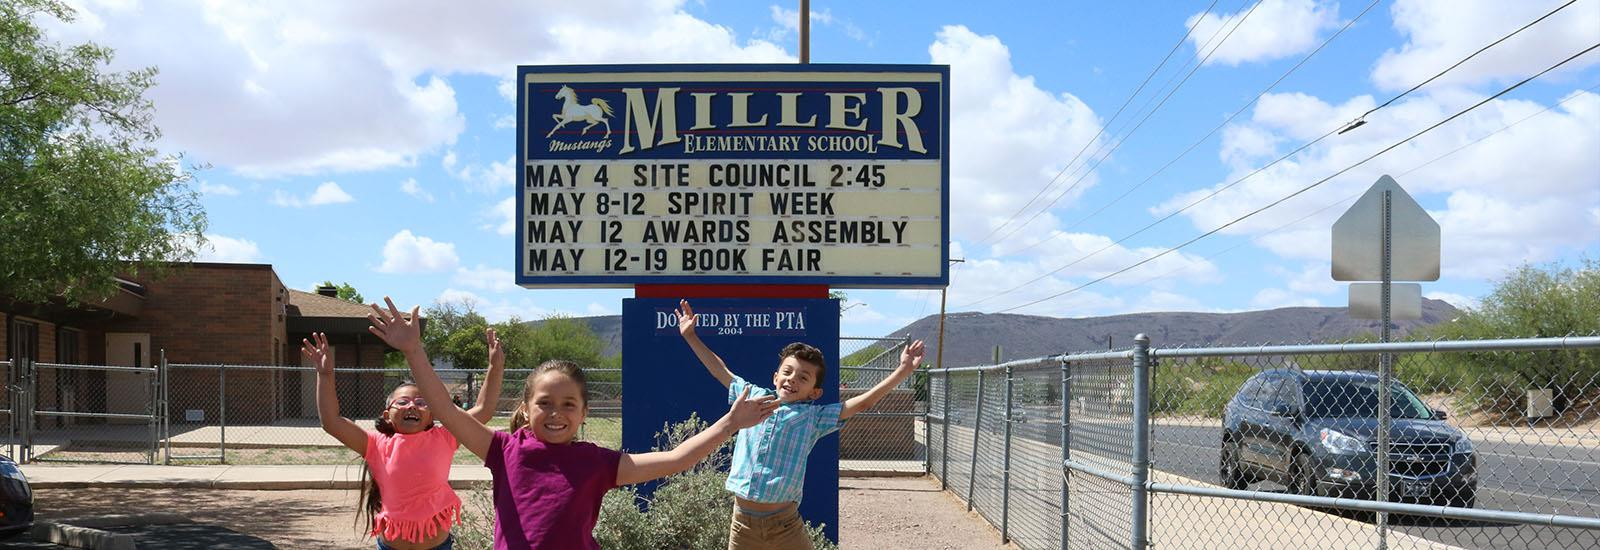 Miller is committed to creating a positive learning environment.